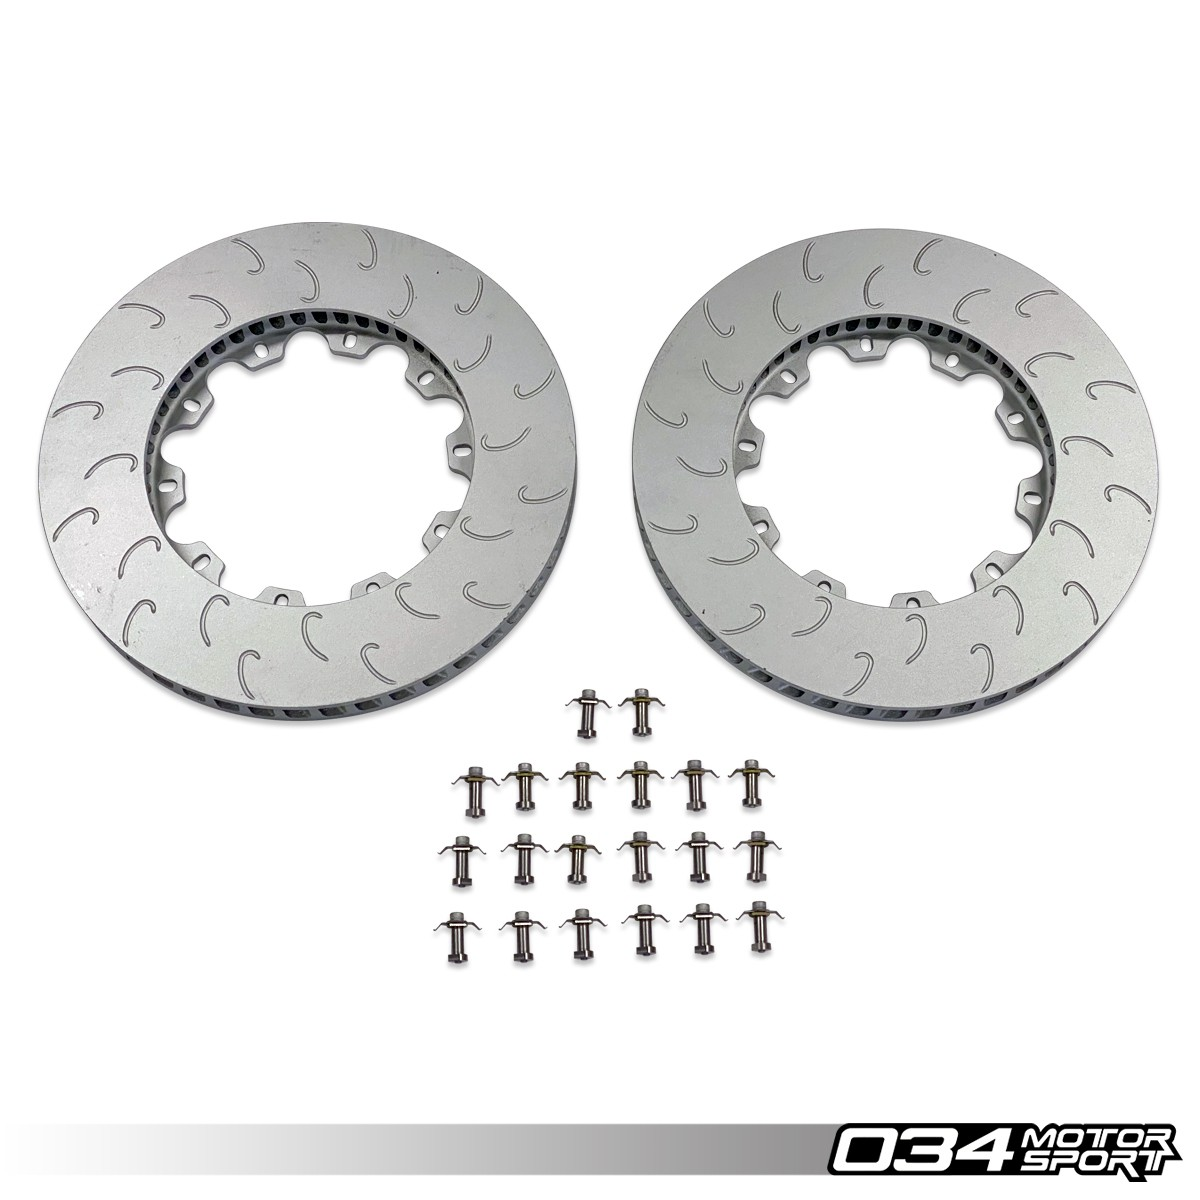 Rotor Ring Set, 340mm, Front MQB VW & Audi 034-304-1002